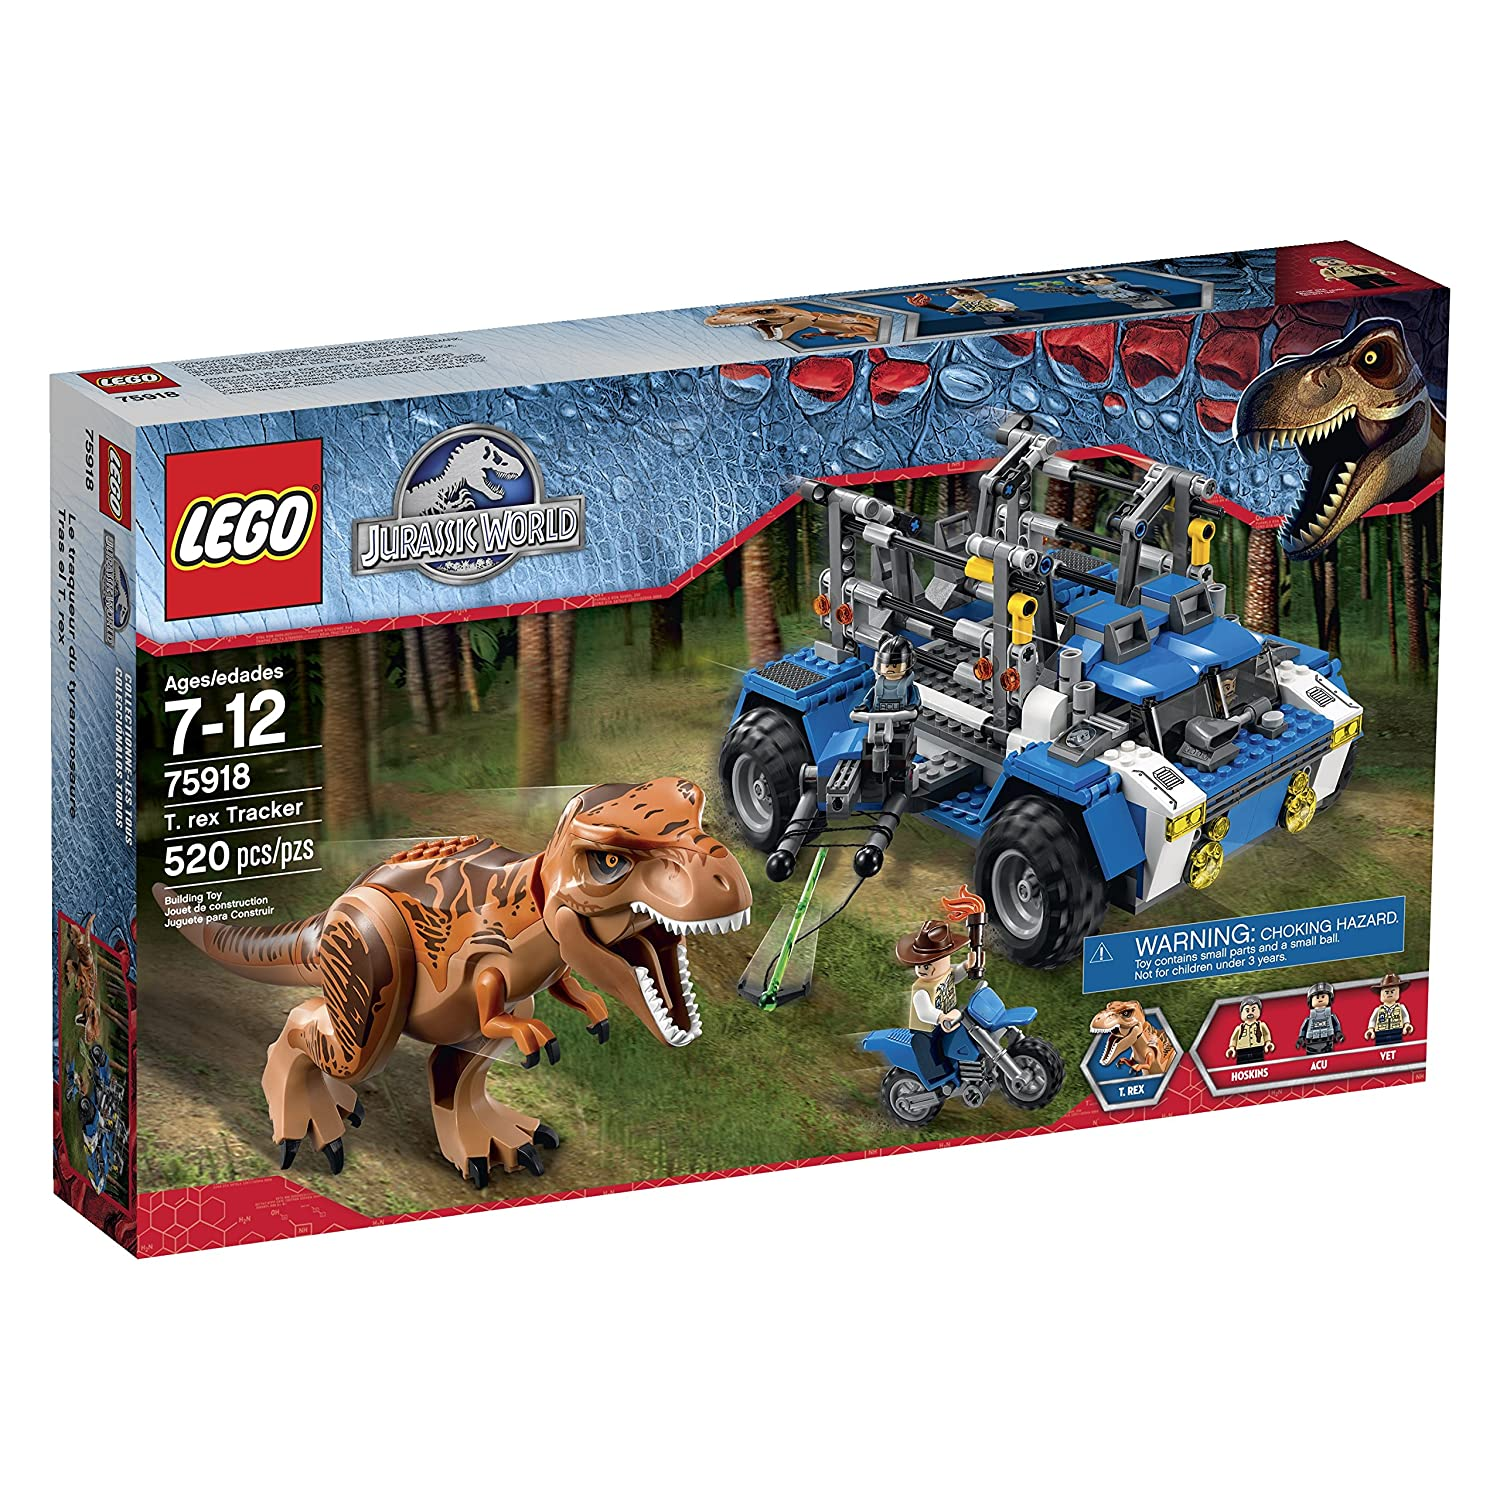 LEGO-Jurassic-World-T-Rex-Tracker-75918-Building-Kit